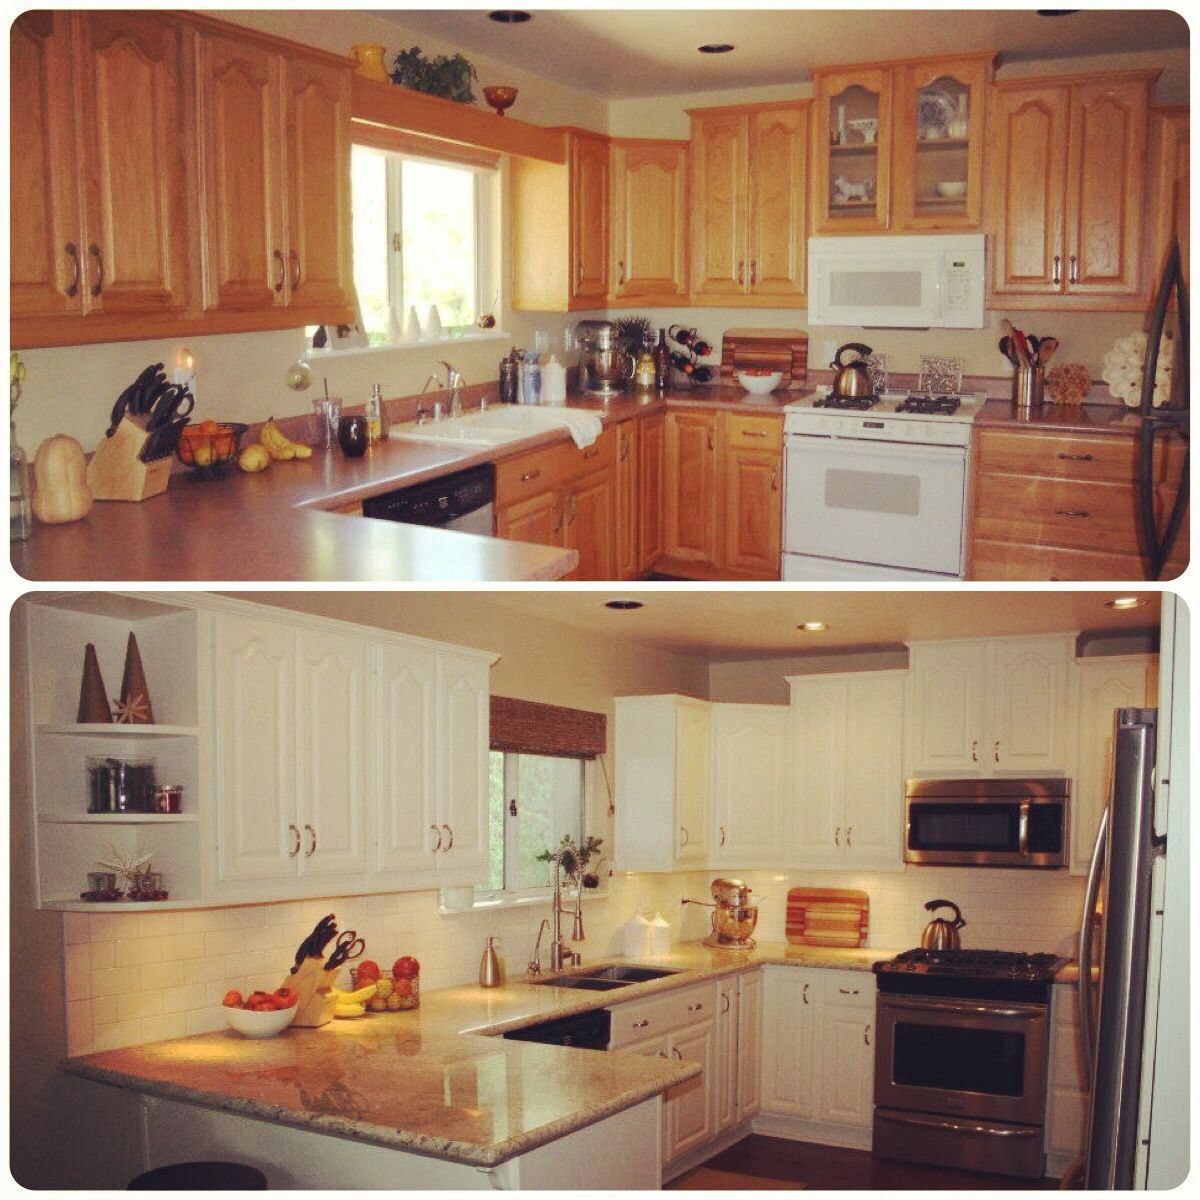 Before and after kitchen remodel for the home pinterest for Kitchen remodel pics